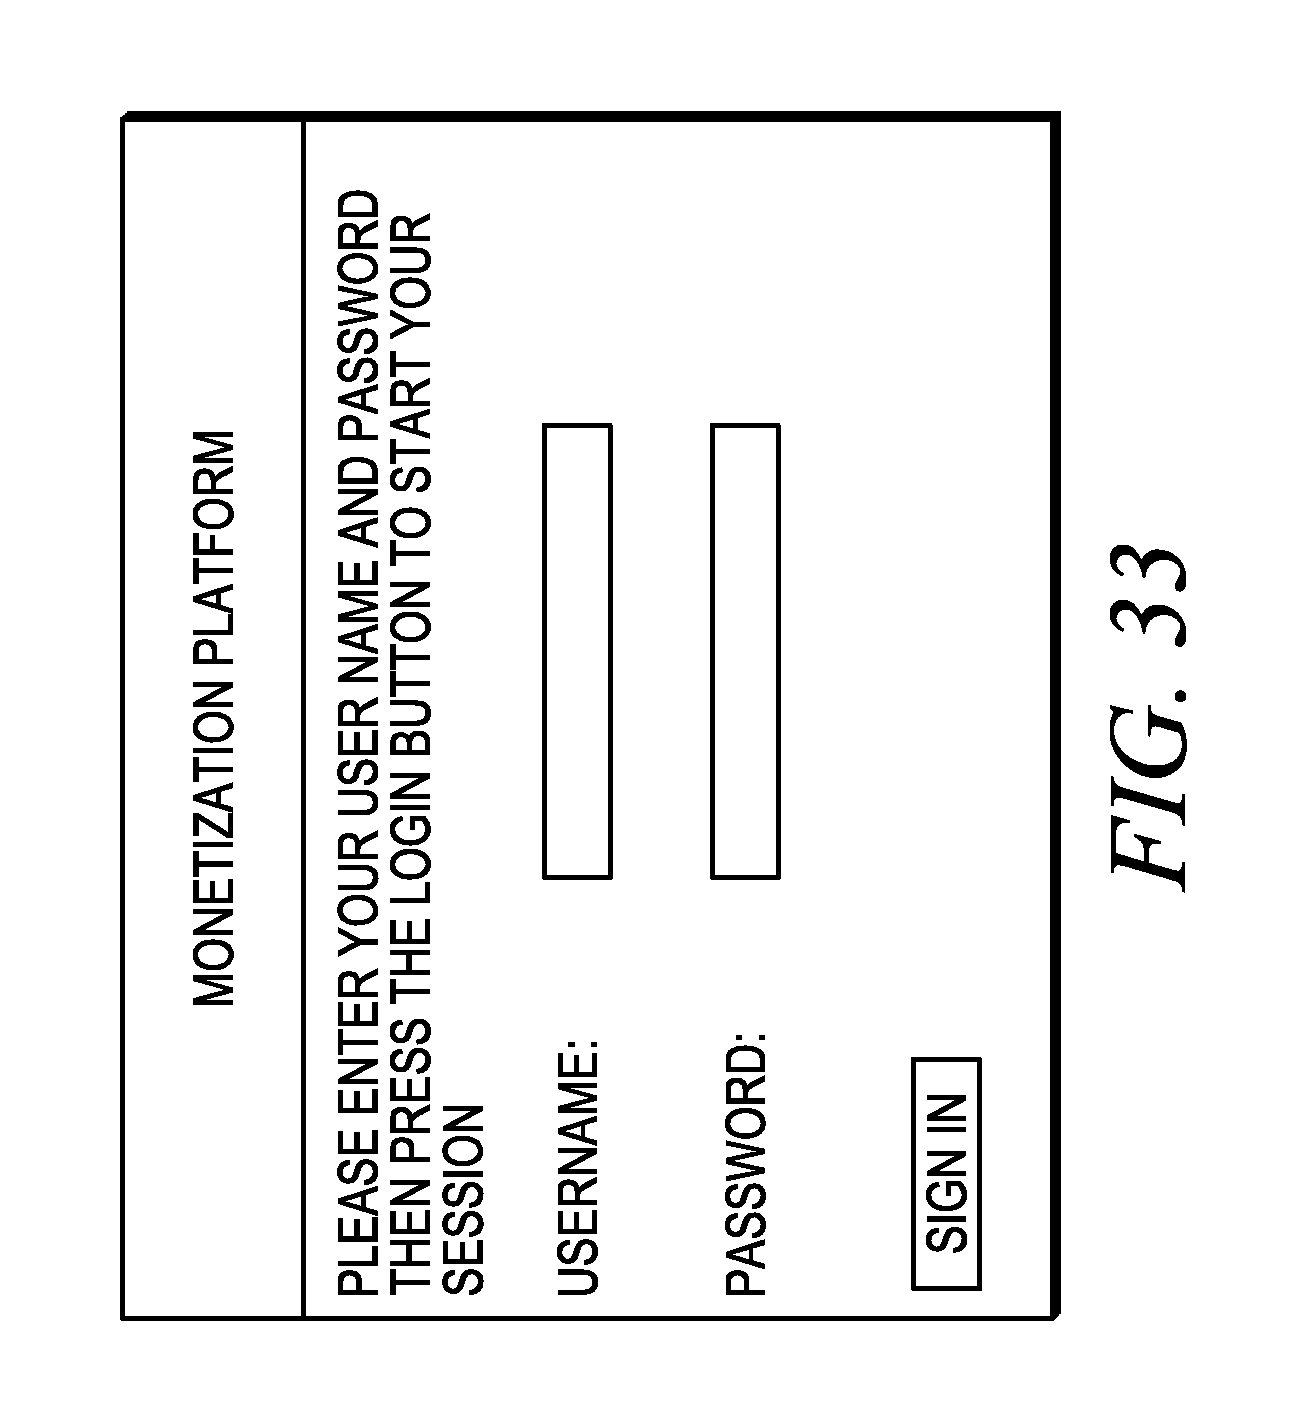 Invoice Logos Patent Us  Aggregation And Enrichment Of Behavioral  Letter Of Receipt Of Money Word with Free Printable Invoice Excel Patent Drawing Snappy Invoice System Pdf